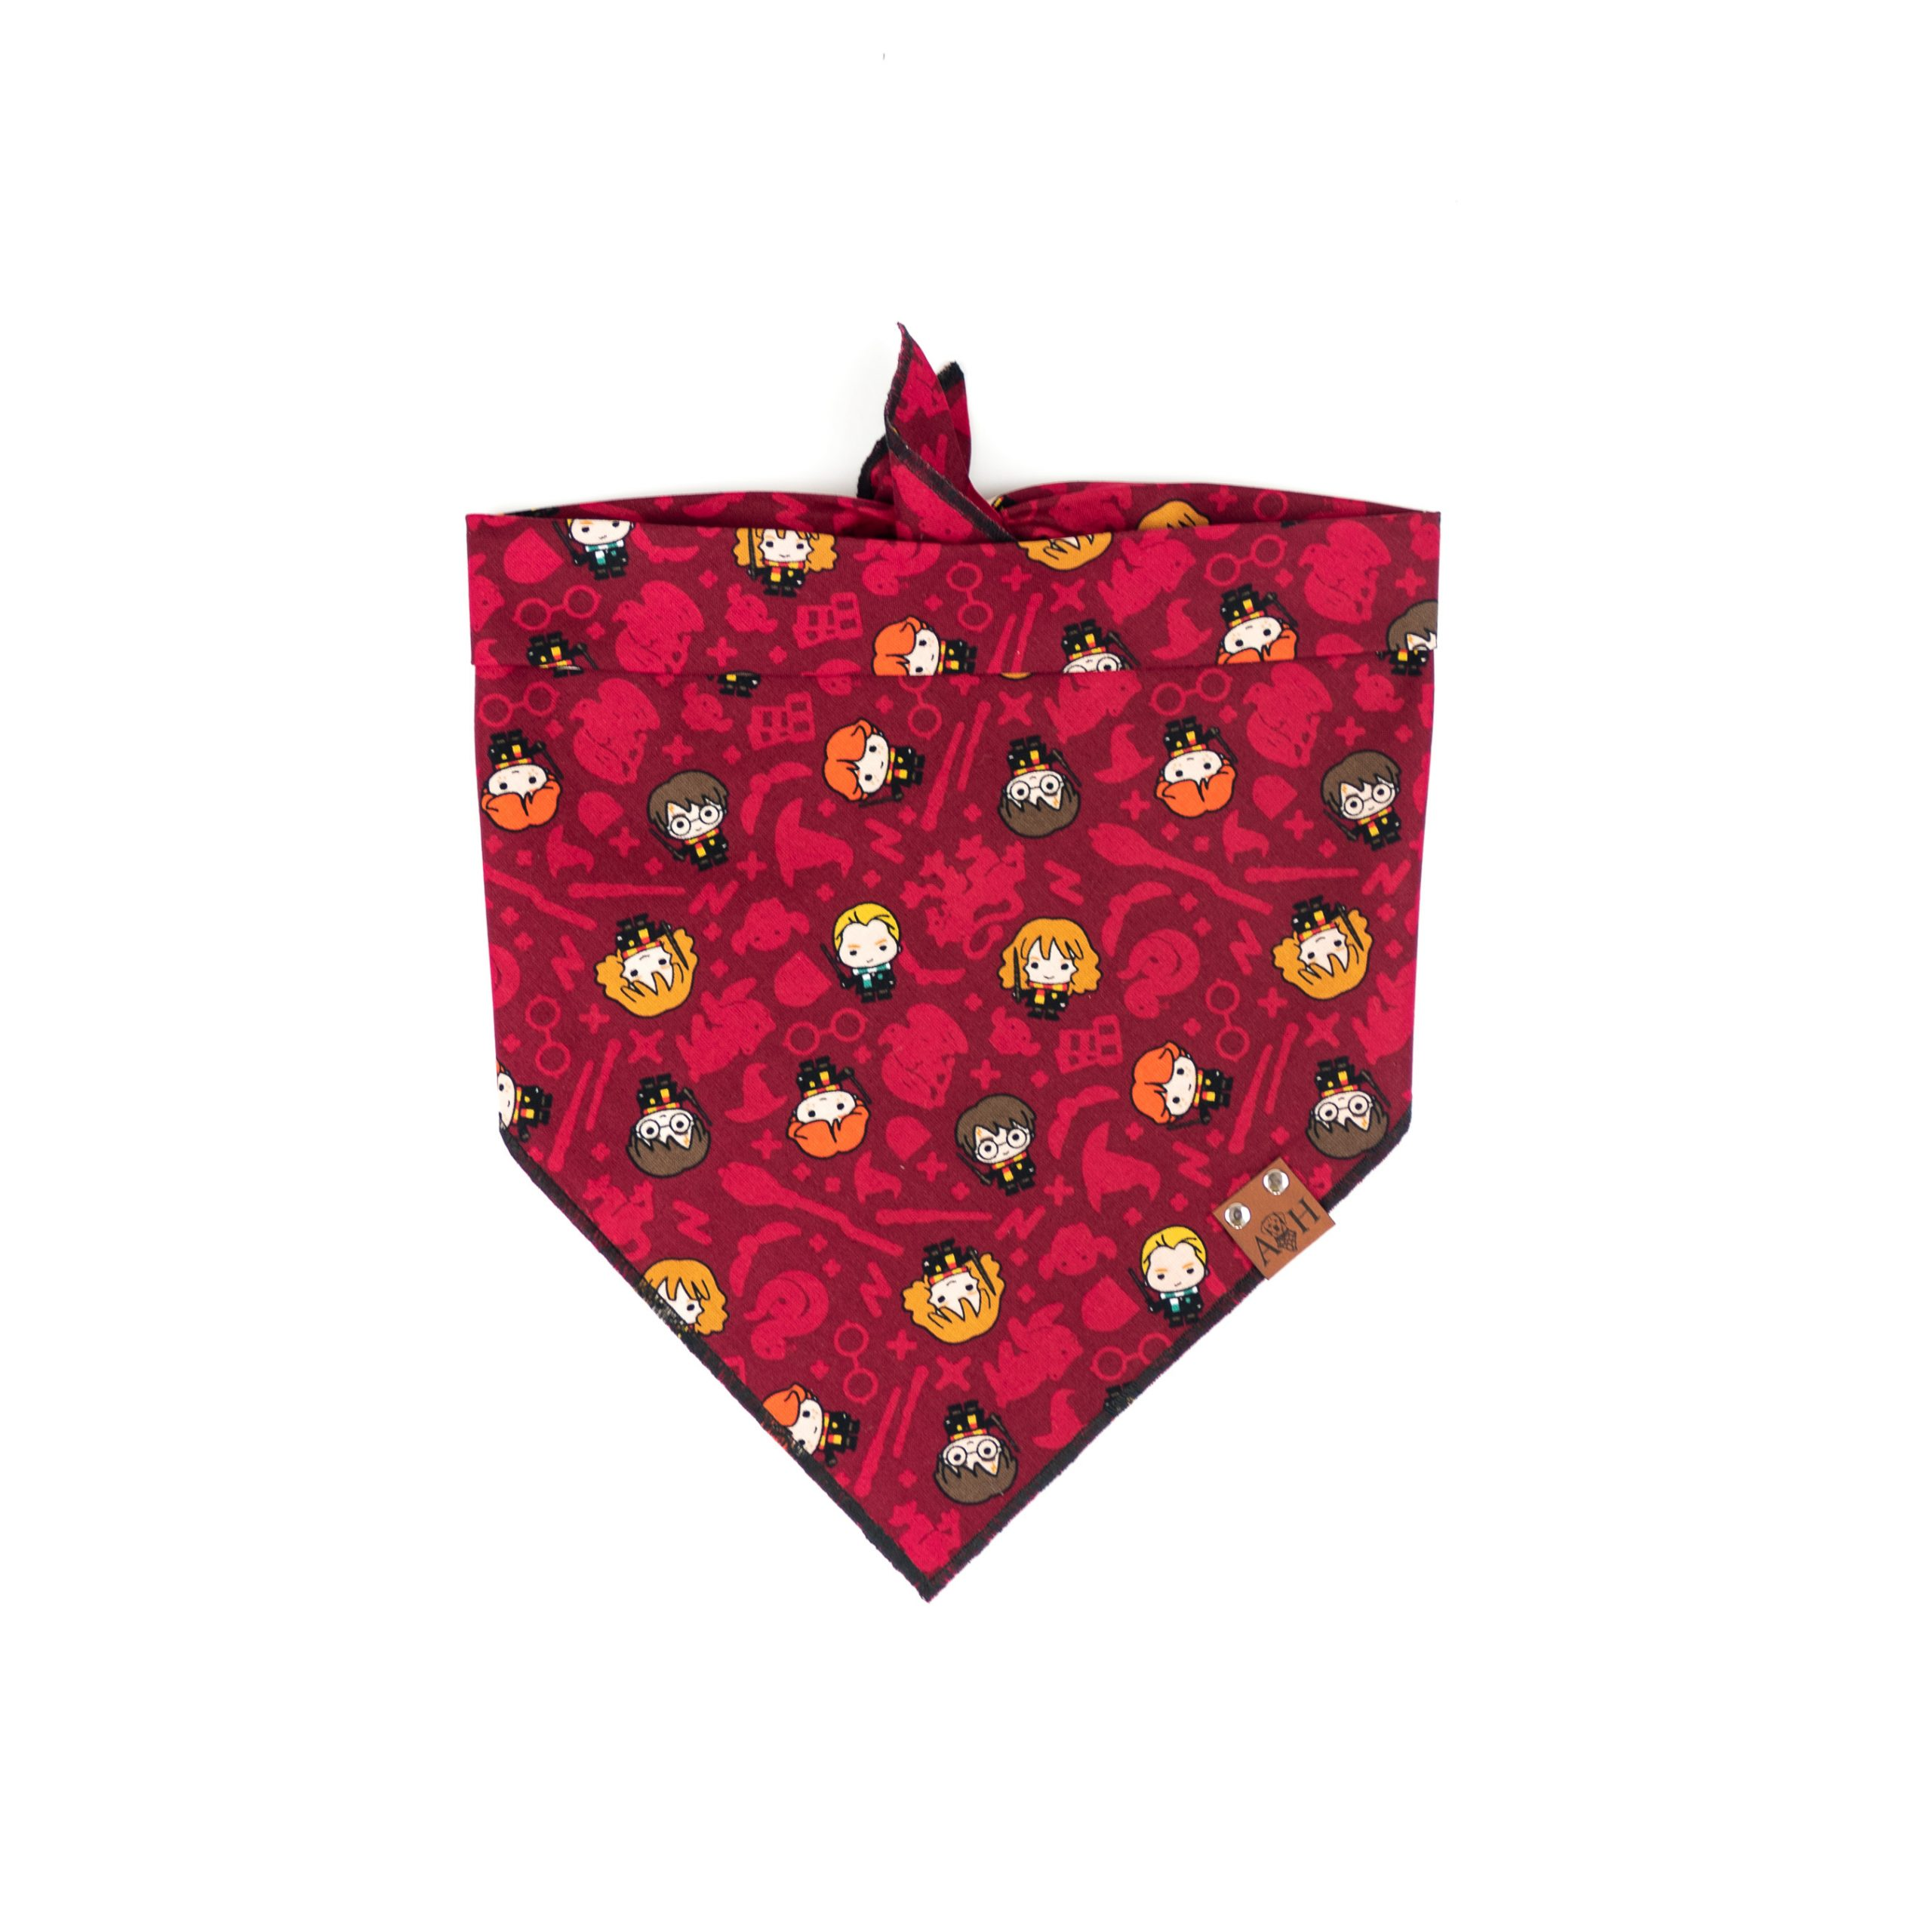 Maroon Dog Bandana featuring Harry Potter characters